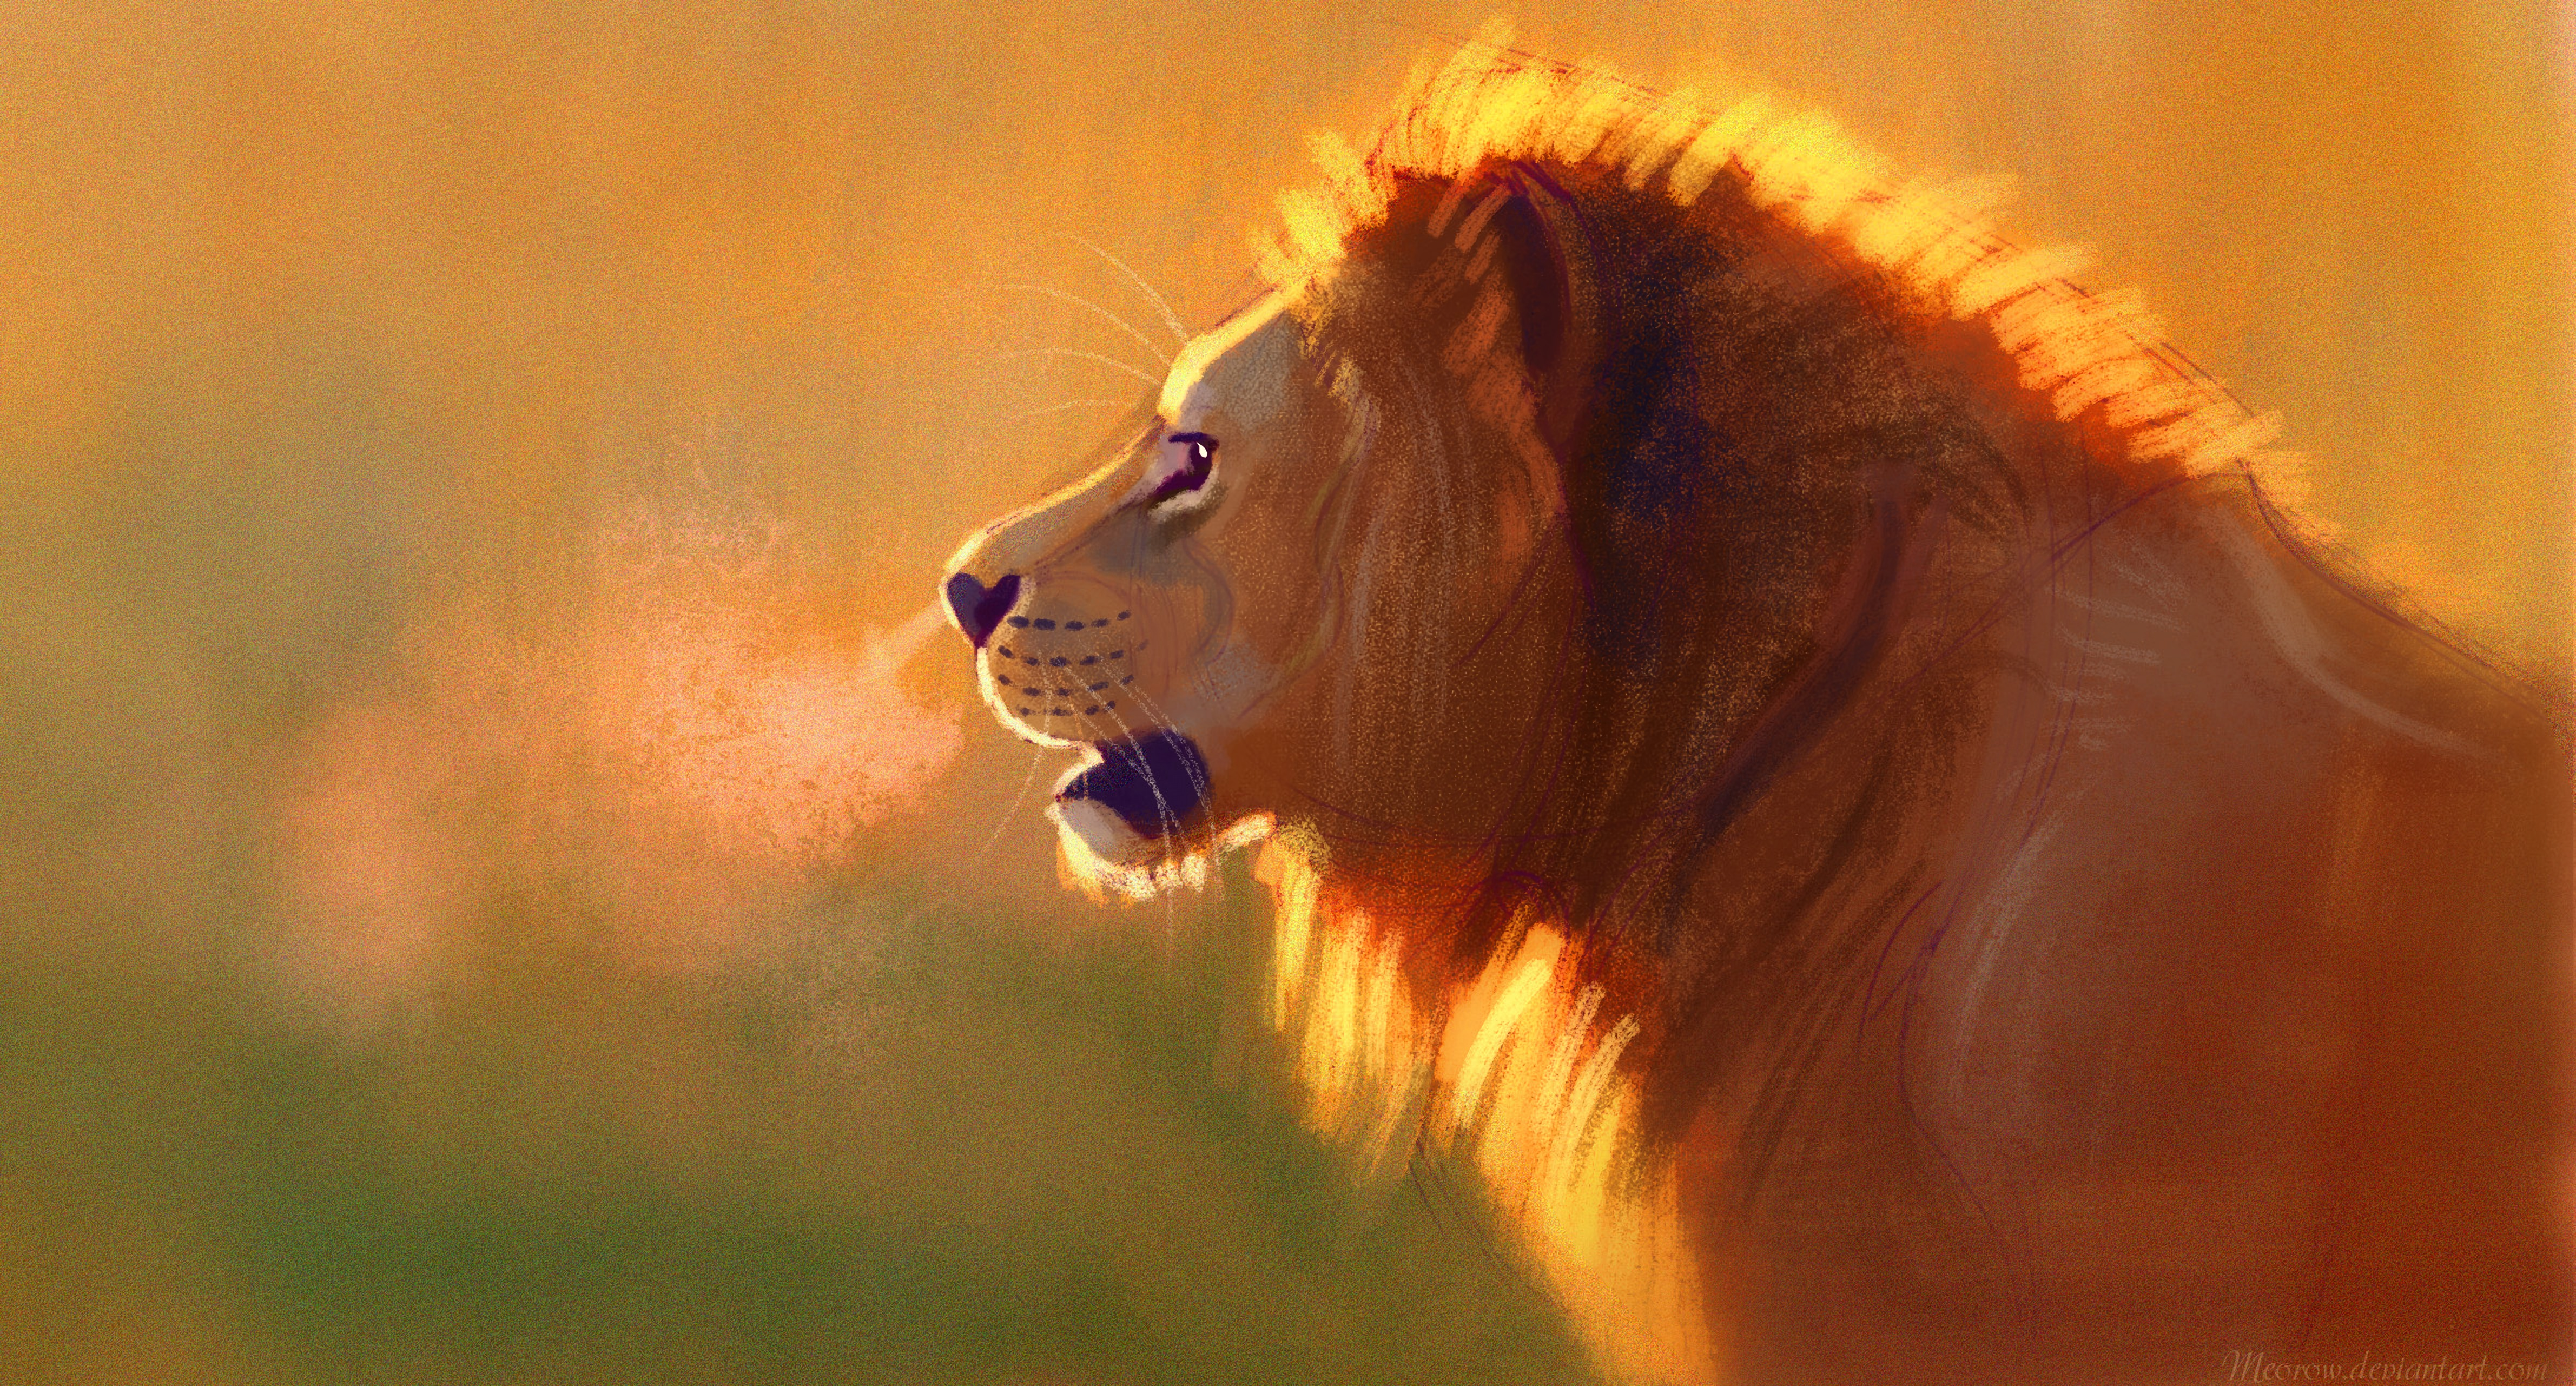 141073 download wallpaper Lion, Big Cat, King Of Beasts, King Of The Beasts, Wildlife, Art screensavers and pictures for free